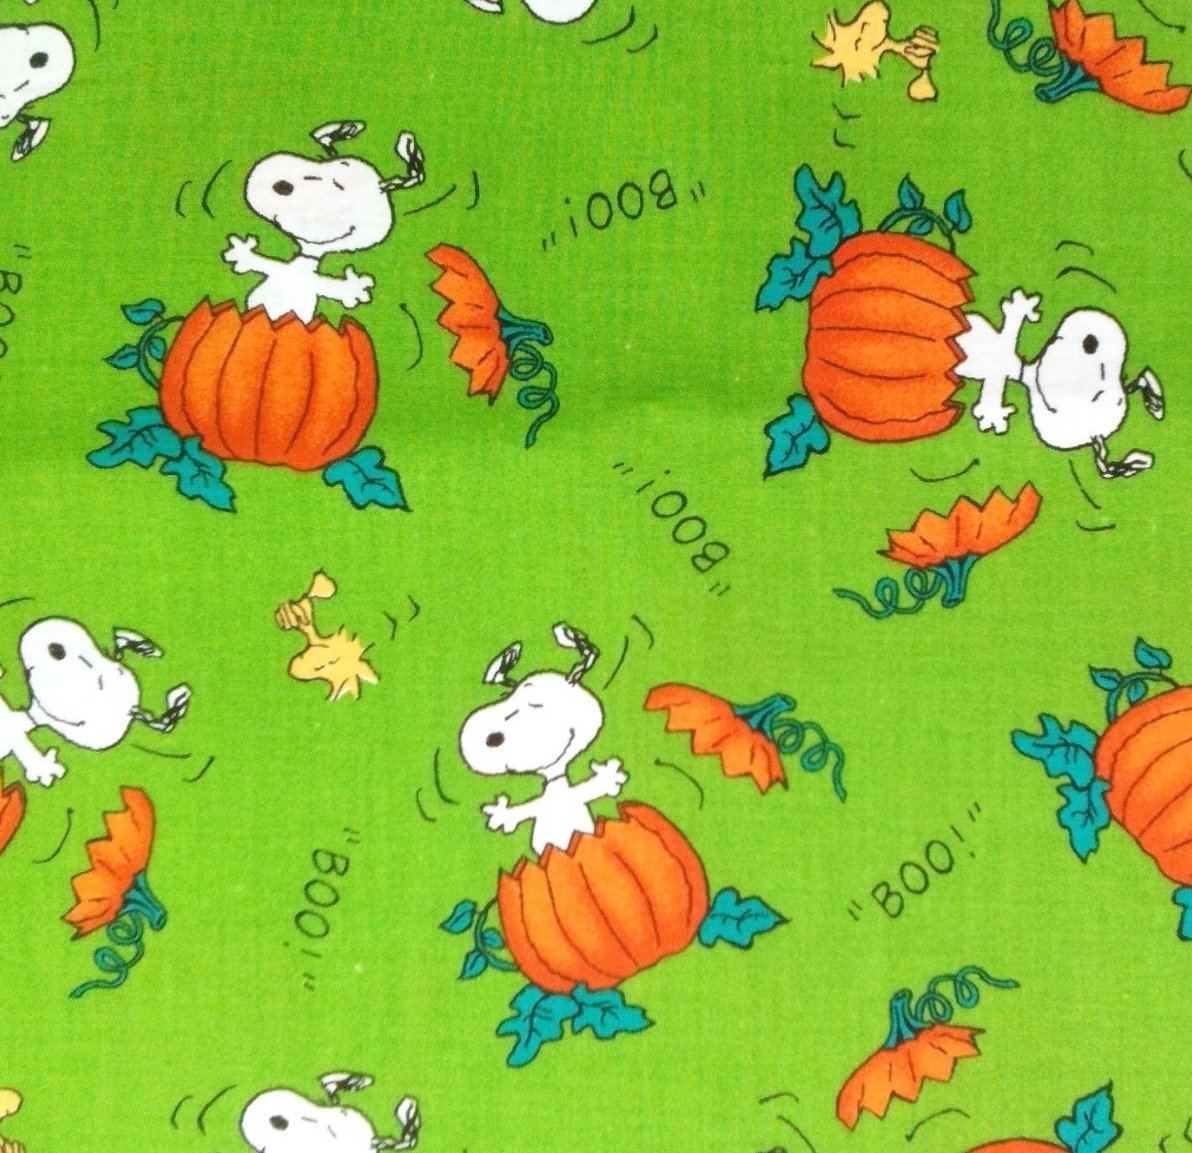 "1/2 Yard - Snoopy & Woodstock ""The Great Pumpkin"" on Green Halloween Fabric (Great for Quilting, Sewing, Craft Projects, Throw Pillows & More) 1/2 Yard.., By Peanuts"